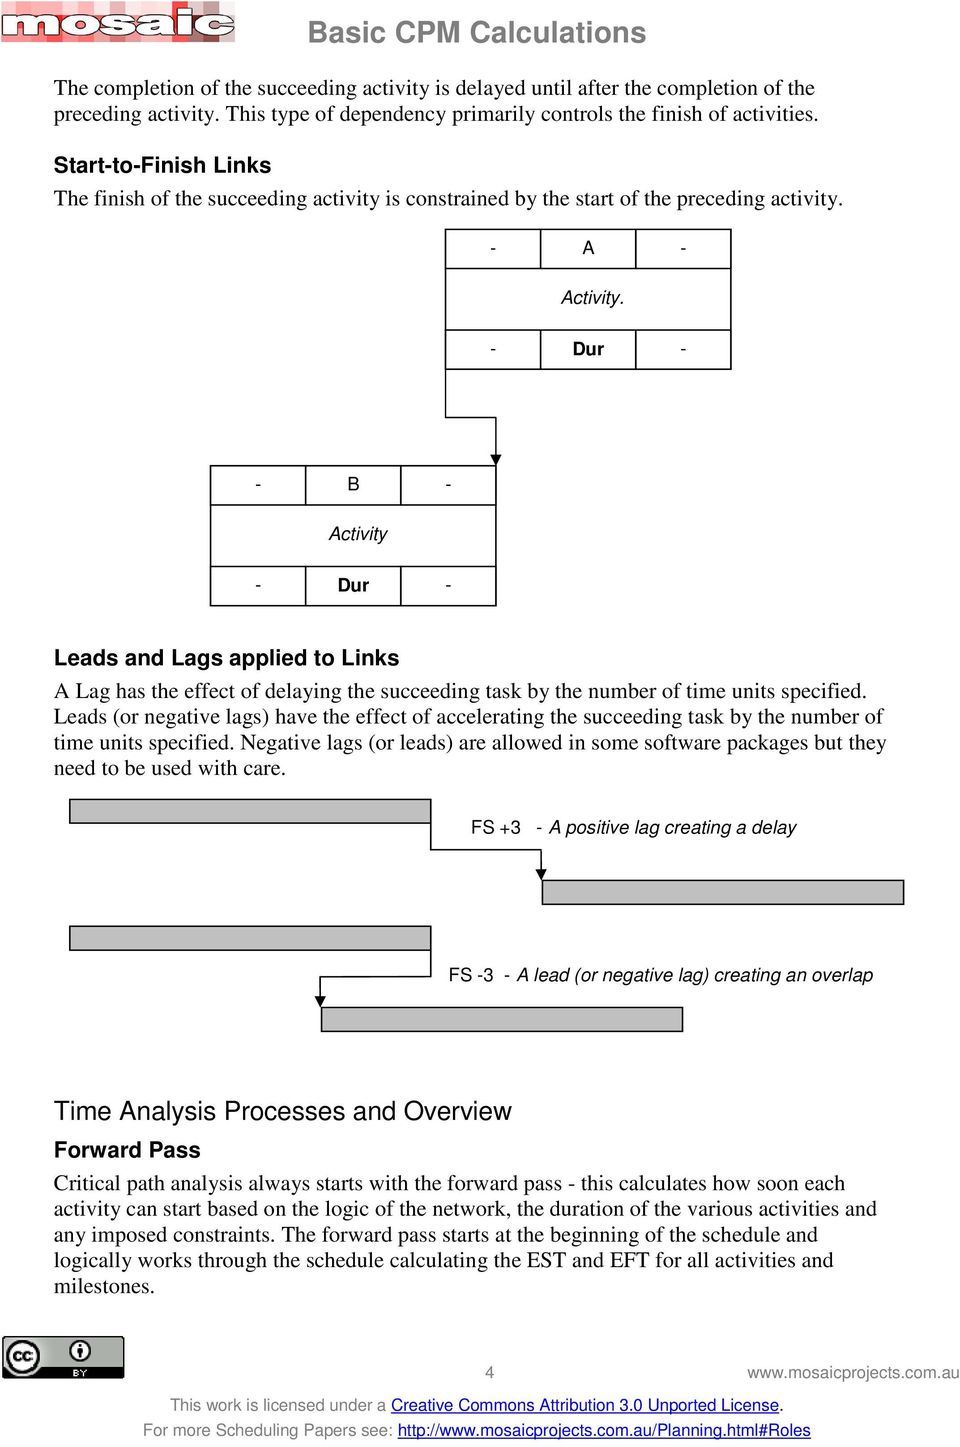 - B - Activity Leads and Lags applied to Links A Lag has the effect of delaying the succeeding task by the number of time units specified.